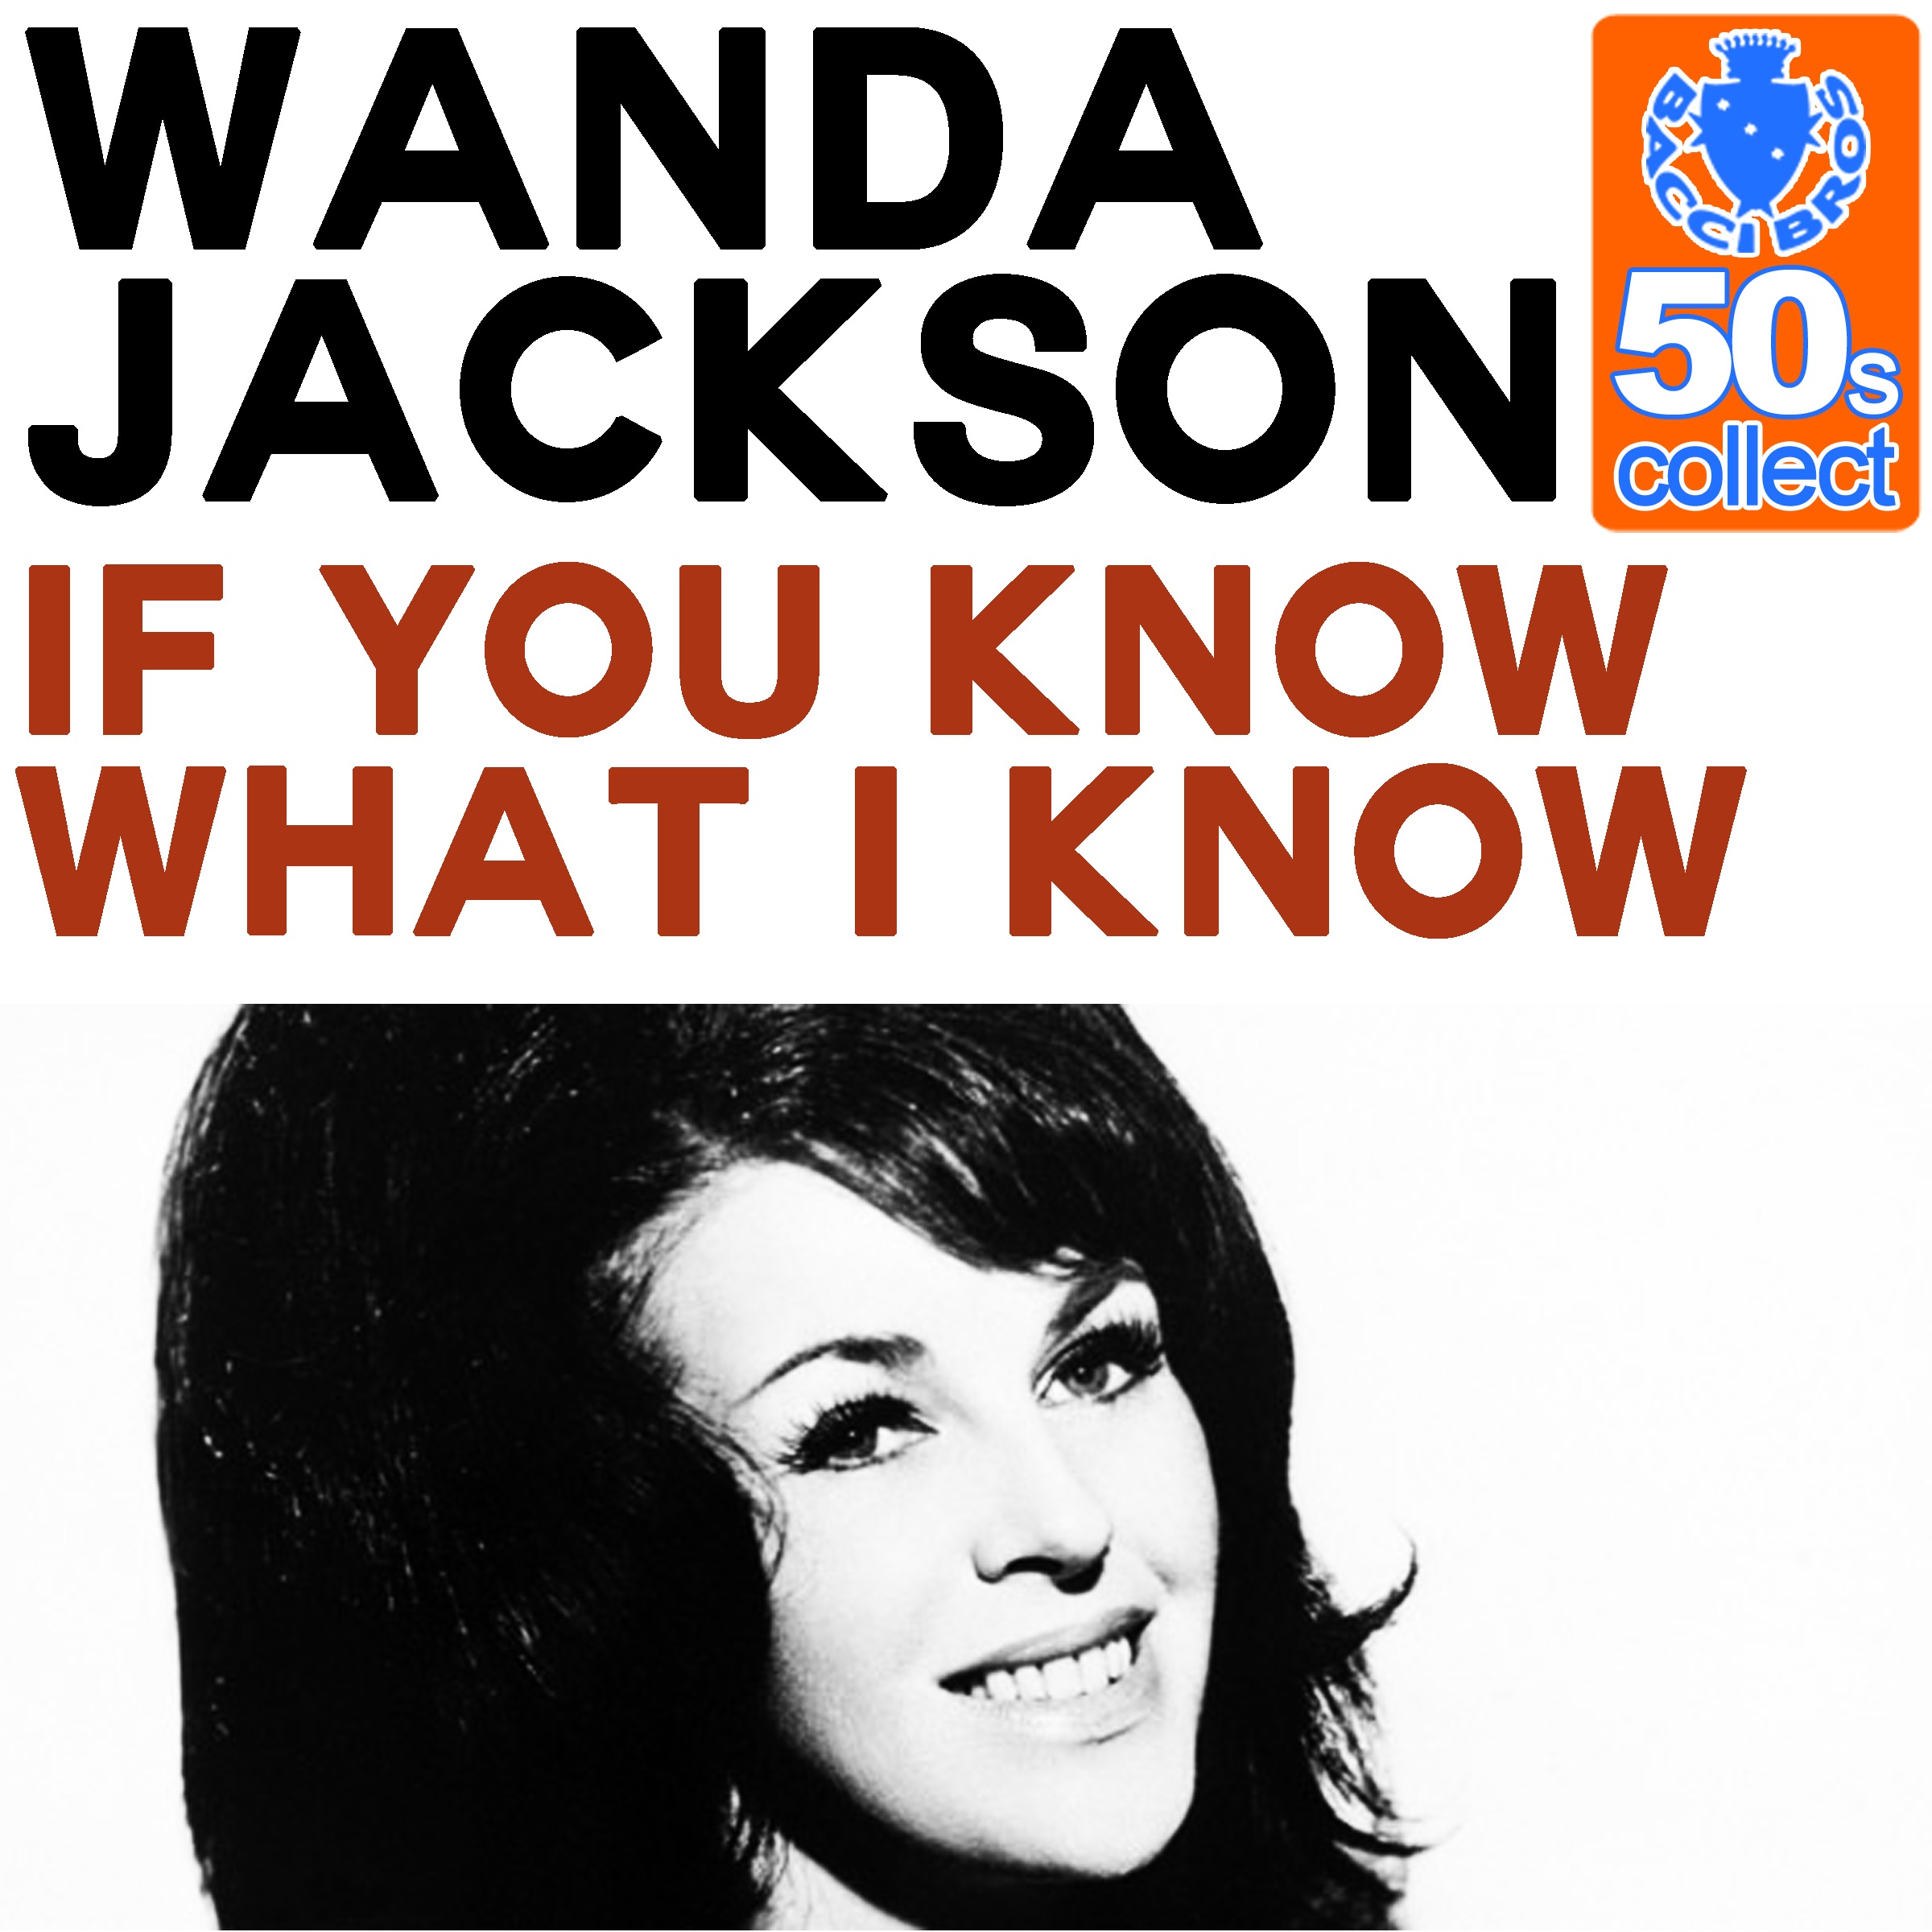 If You Know What I Know (Remastered) - Single